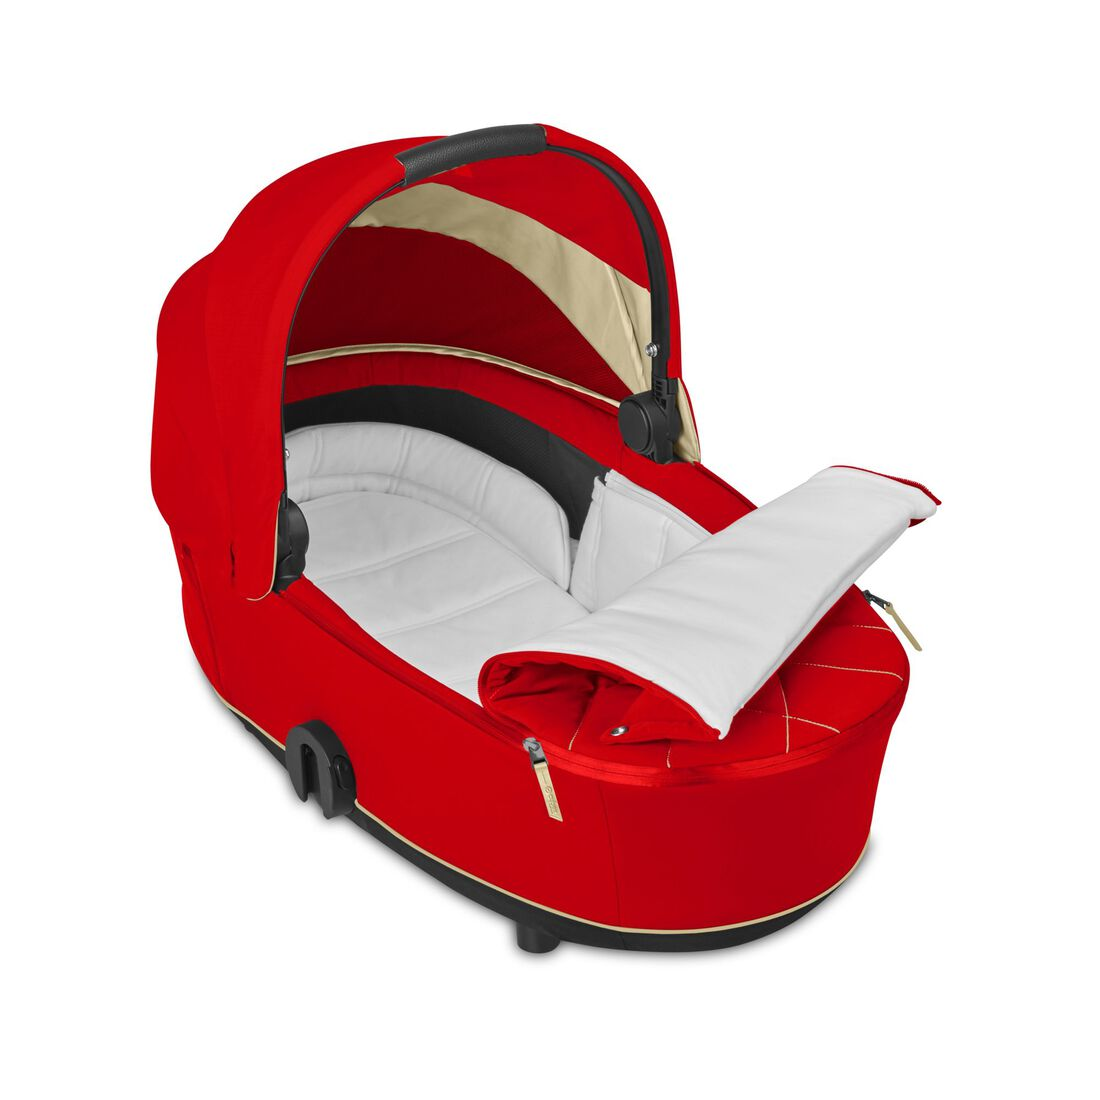 CYBEX Mios Lux Carry Cot - Autumn Gold in Autumn Gold large Bild 2